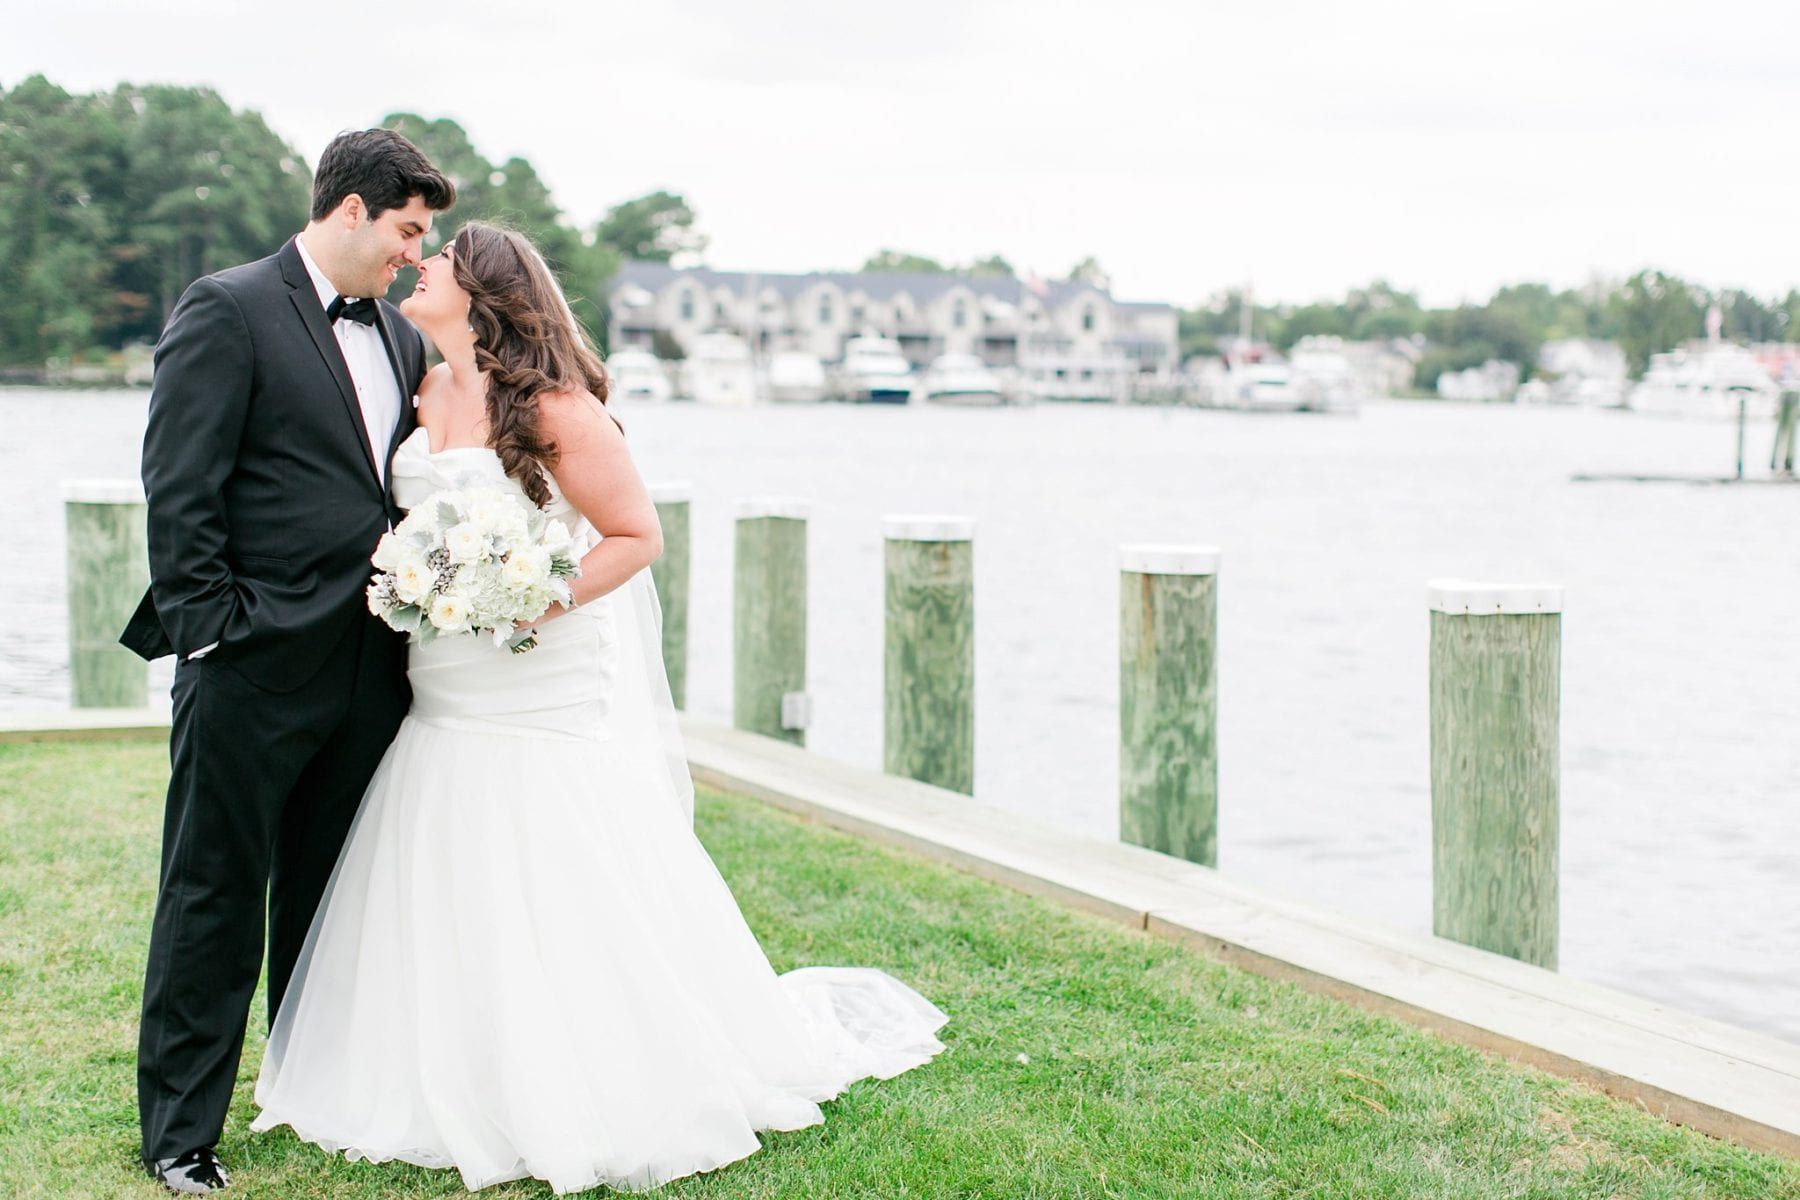 Chesapeake Bay Maritime Museum Wedding Photos Maryland Wedding Photographer Megan Kelsey Photography Halie & Mike-55.jpg